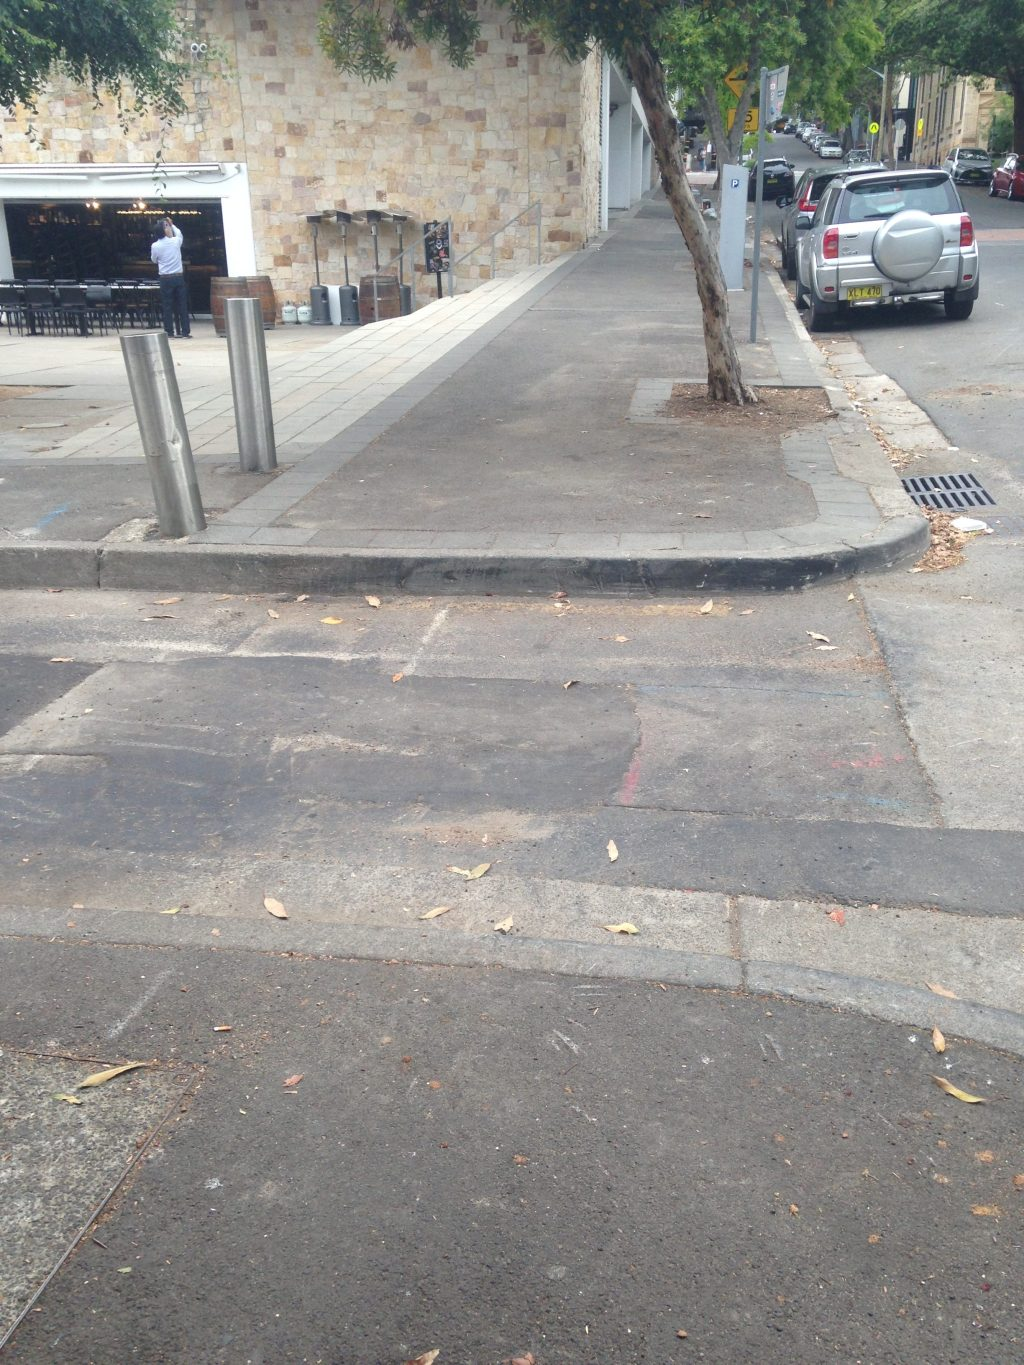 Kerb ramp needed